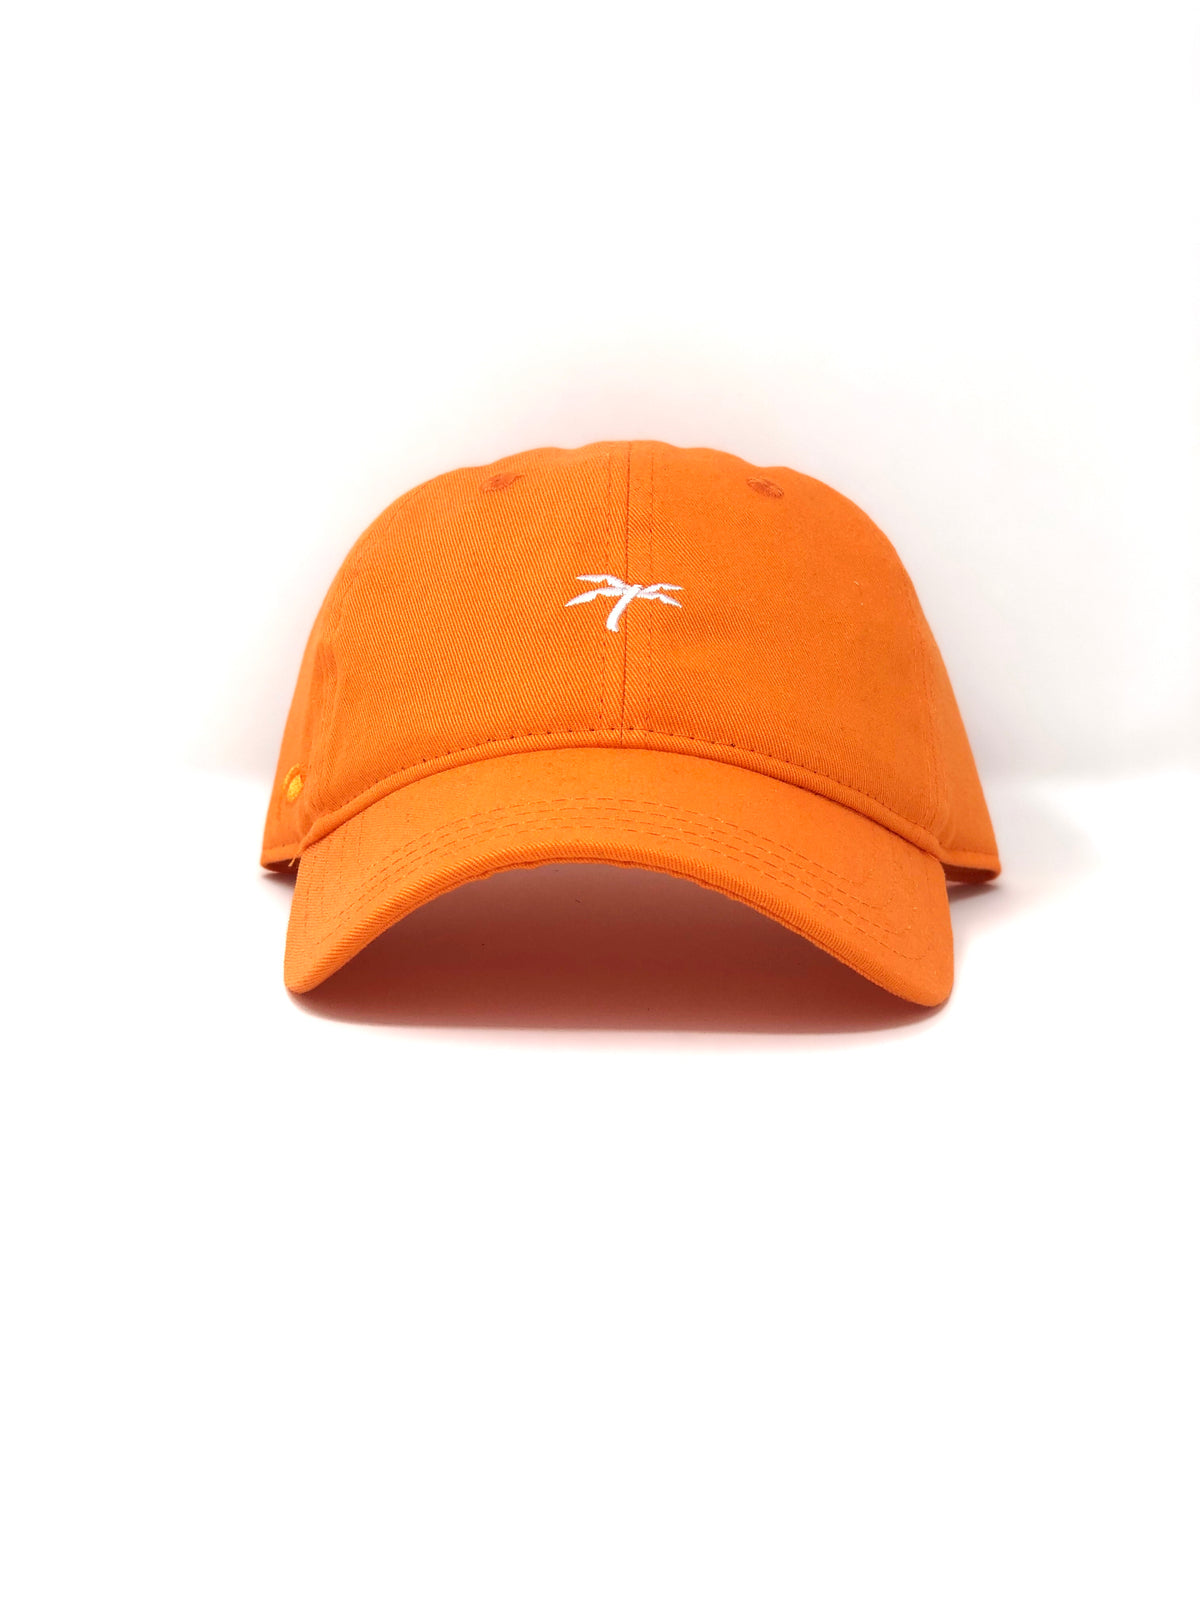 Dad hat orange